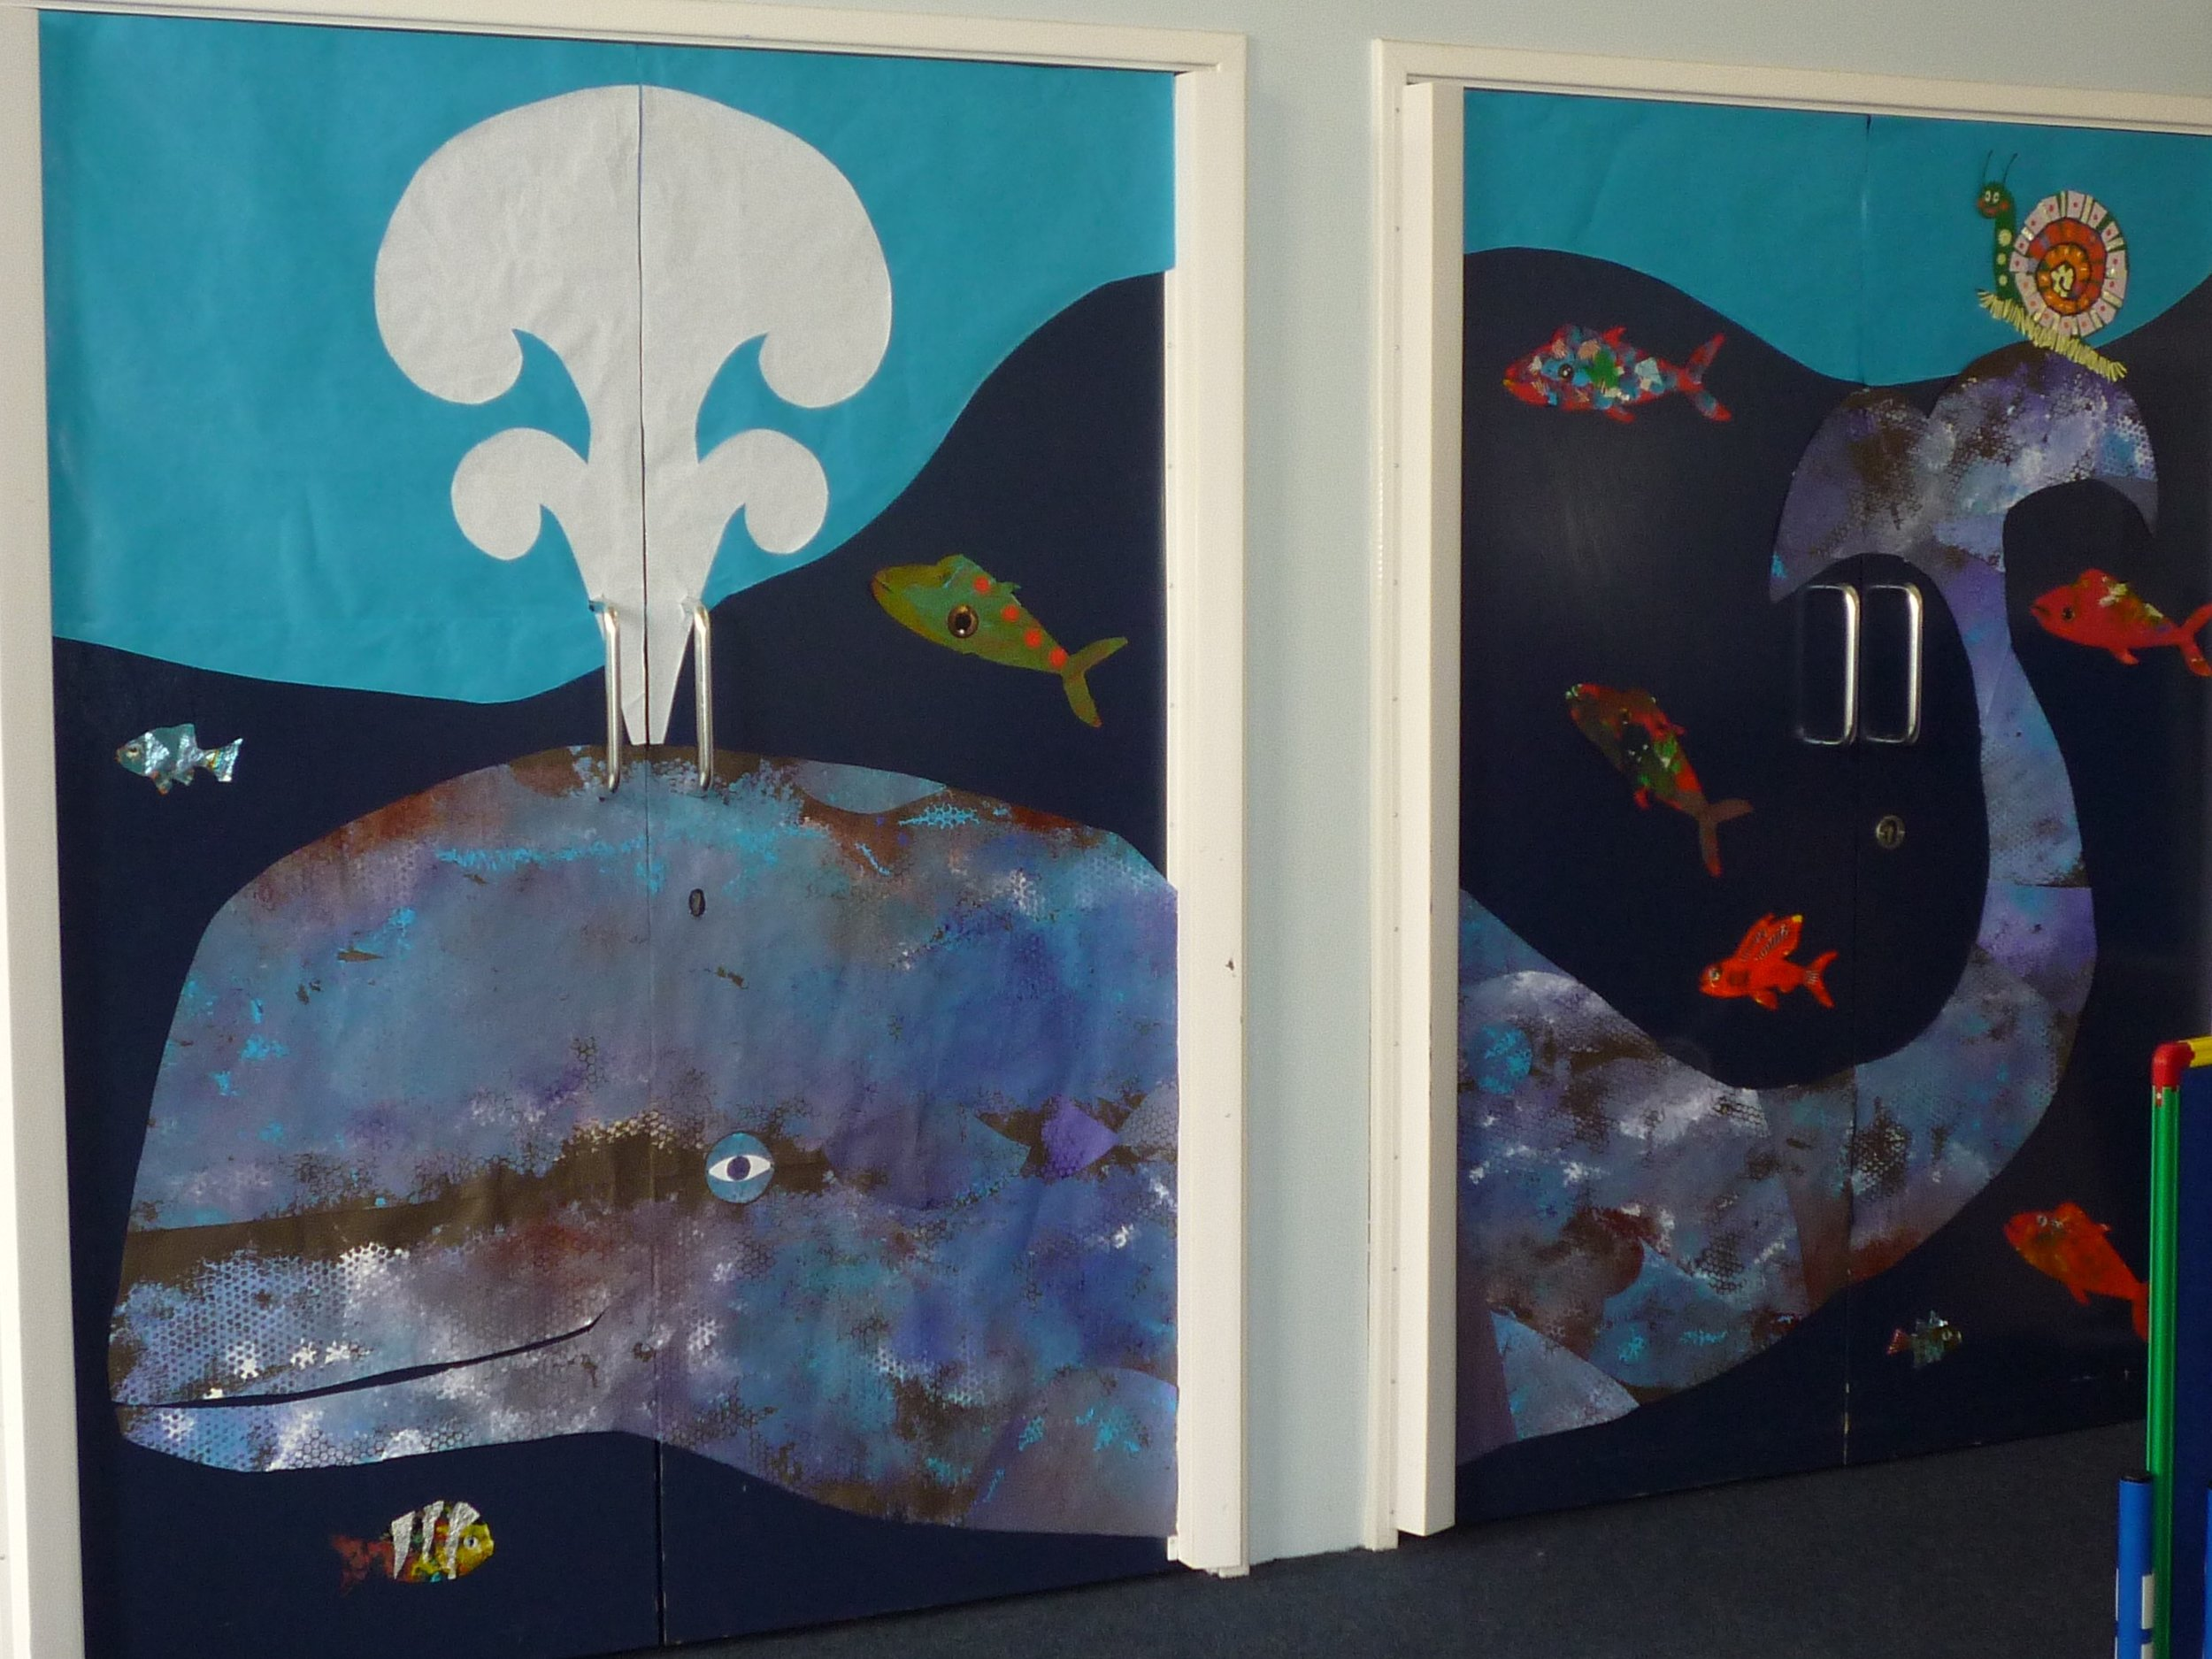 Mural, 'Whale and the snail'